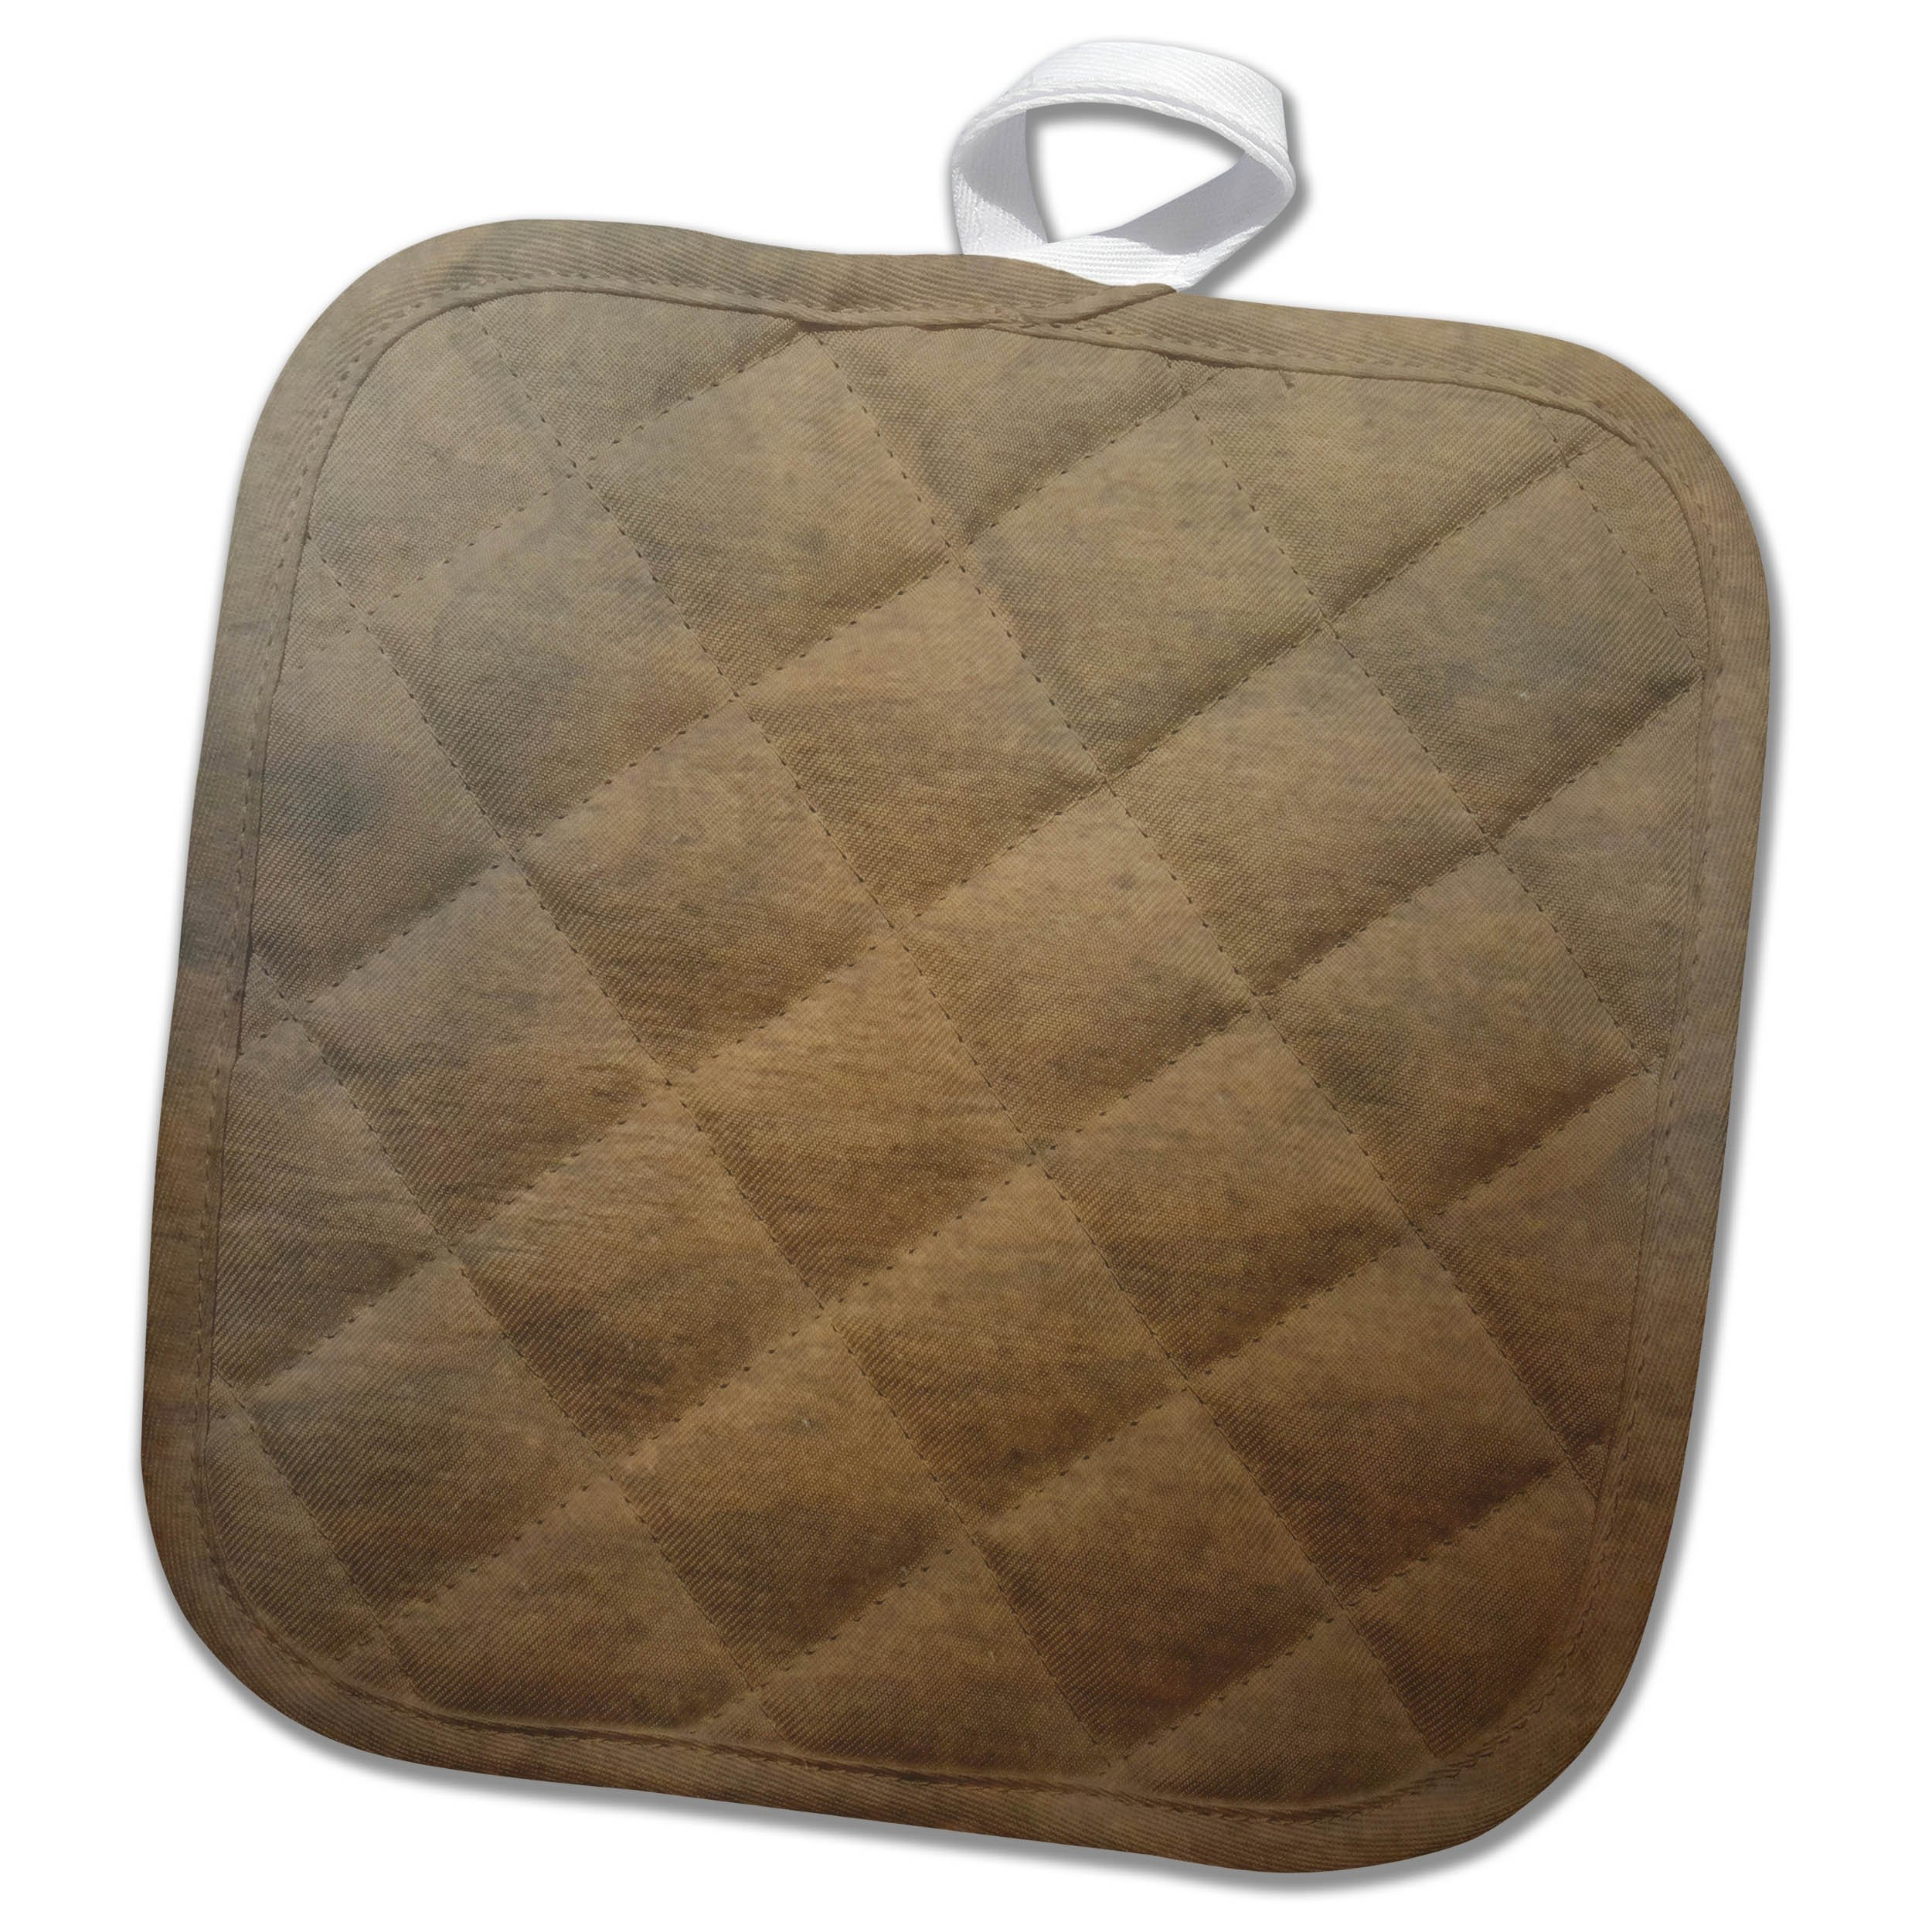 3dRose TDSwhite – Miscellaneous Photography - Smooth Wood Photo - 8x8 Potholder (phl_285300_1) by 3dRose (Image #1)